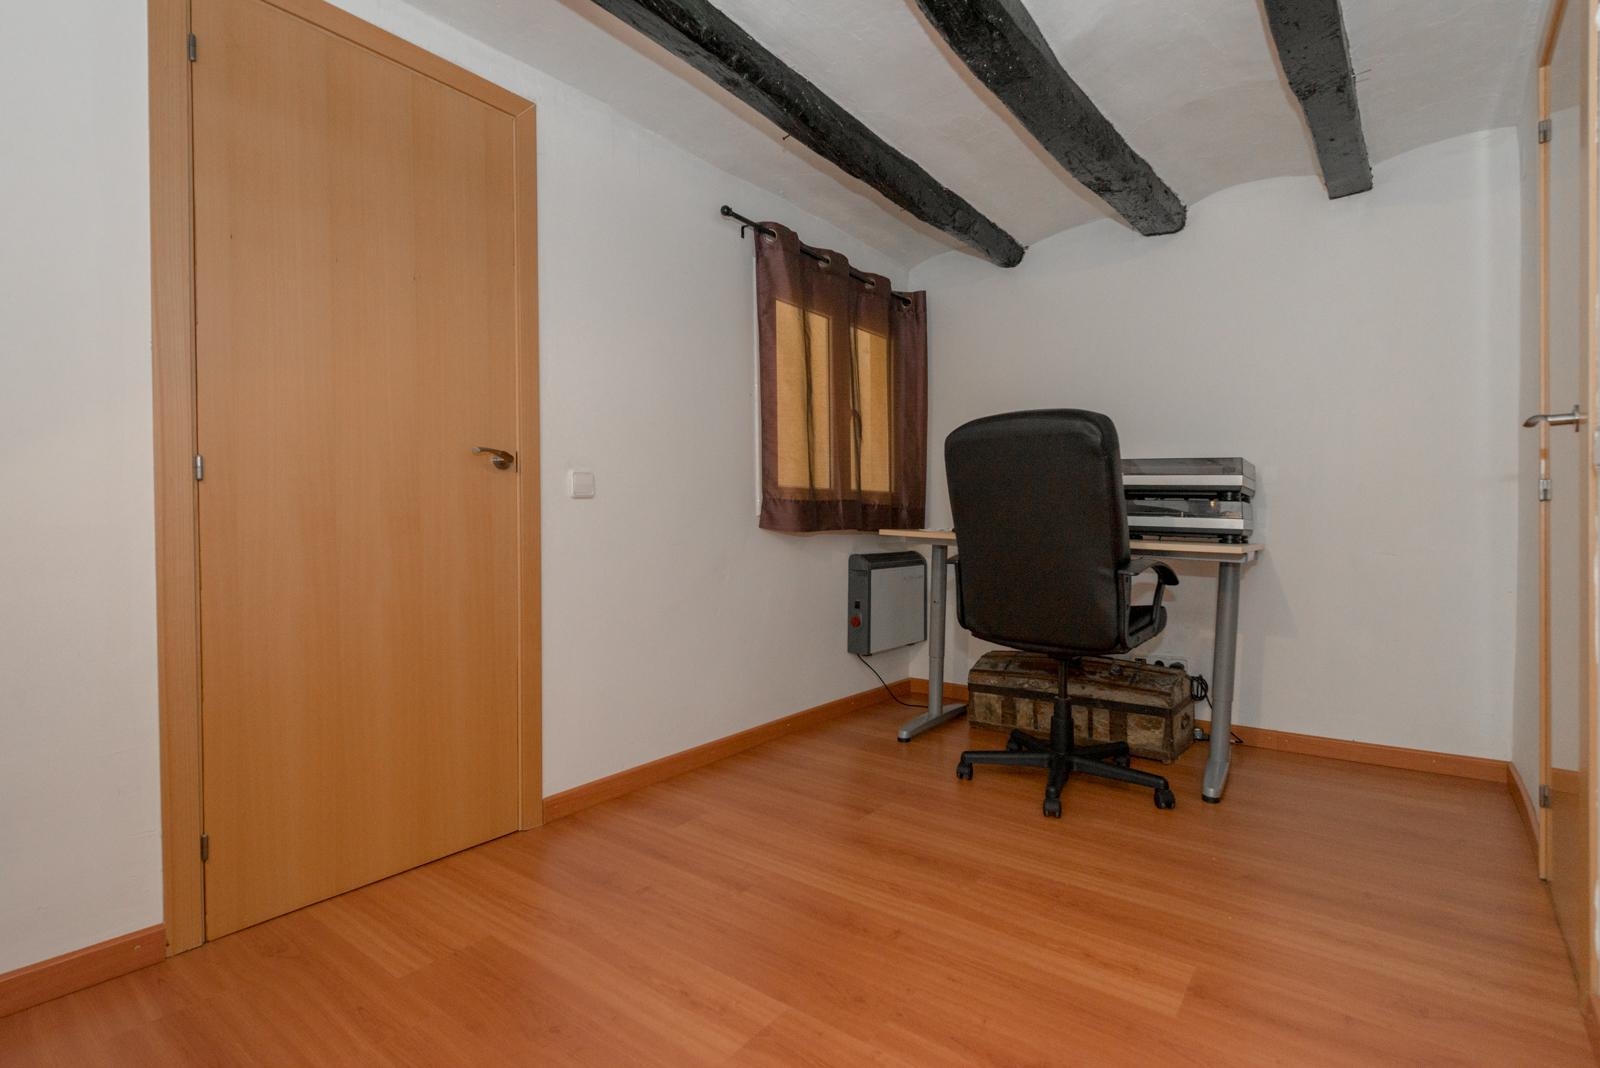 207708 Ground Floor for sale in Ciutat Vella, Barri Gòtic 9